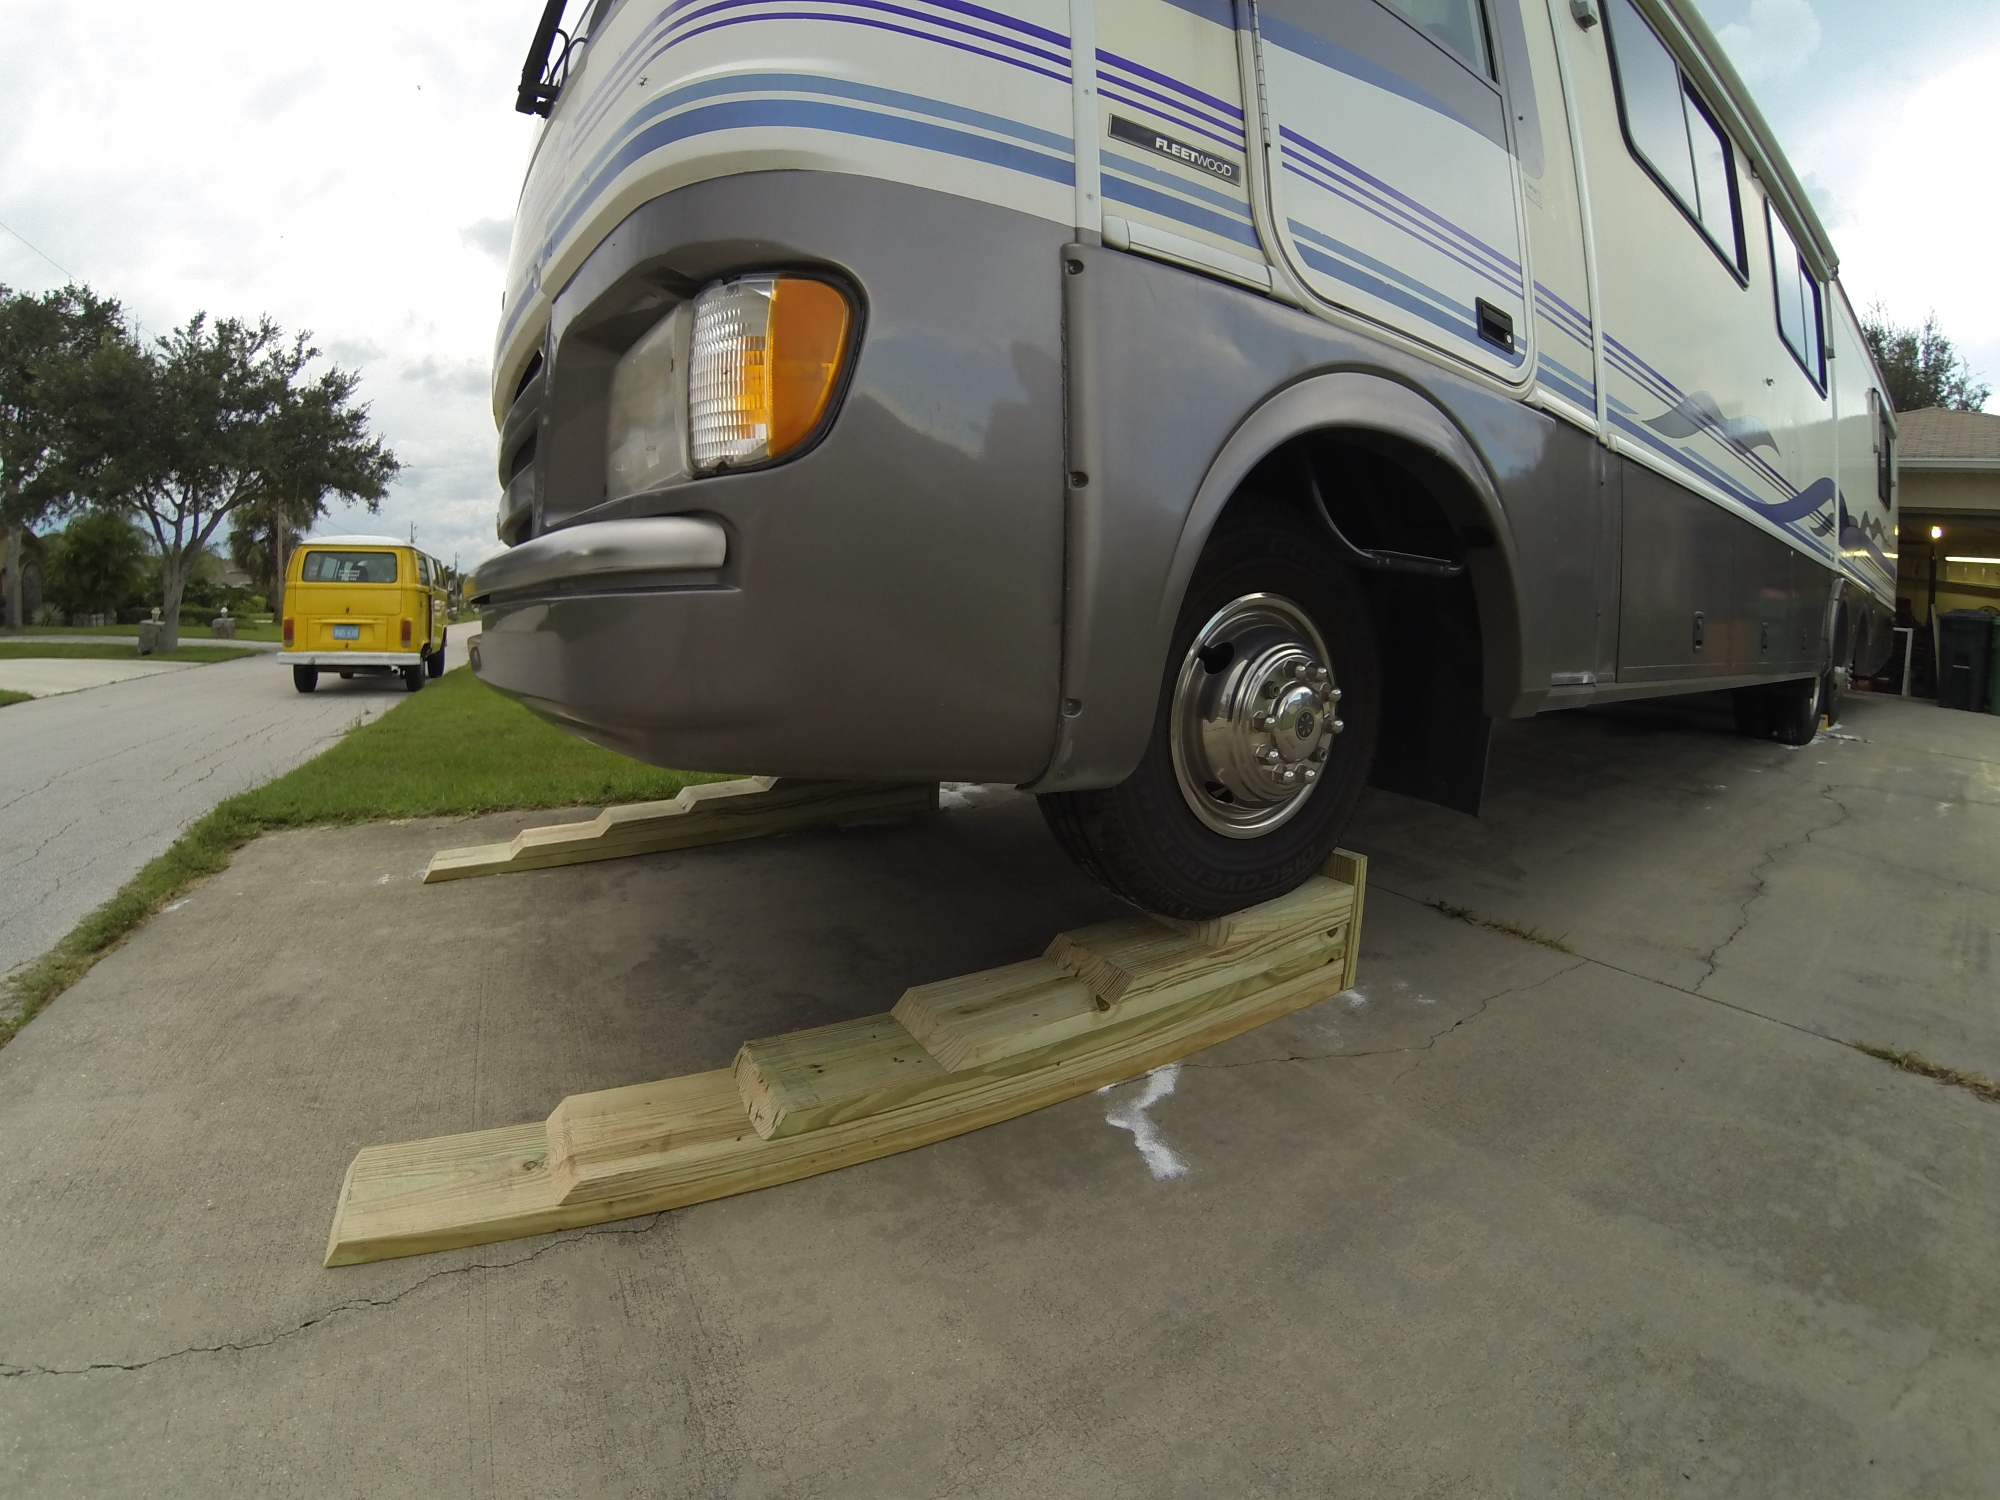 Leveling Travel Trailer On Hill